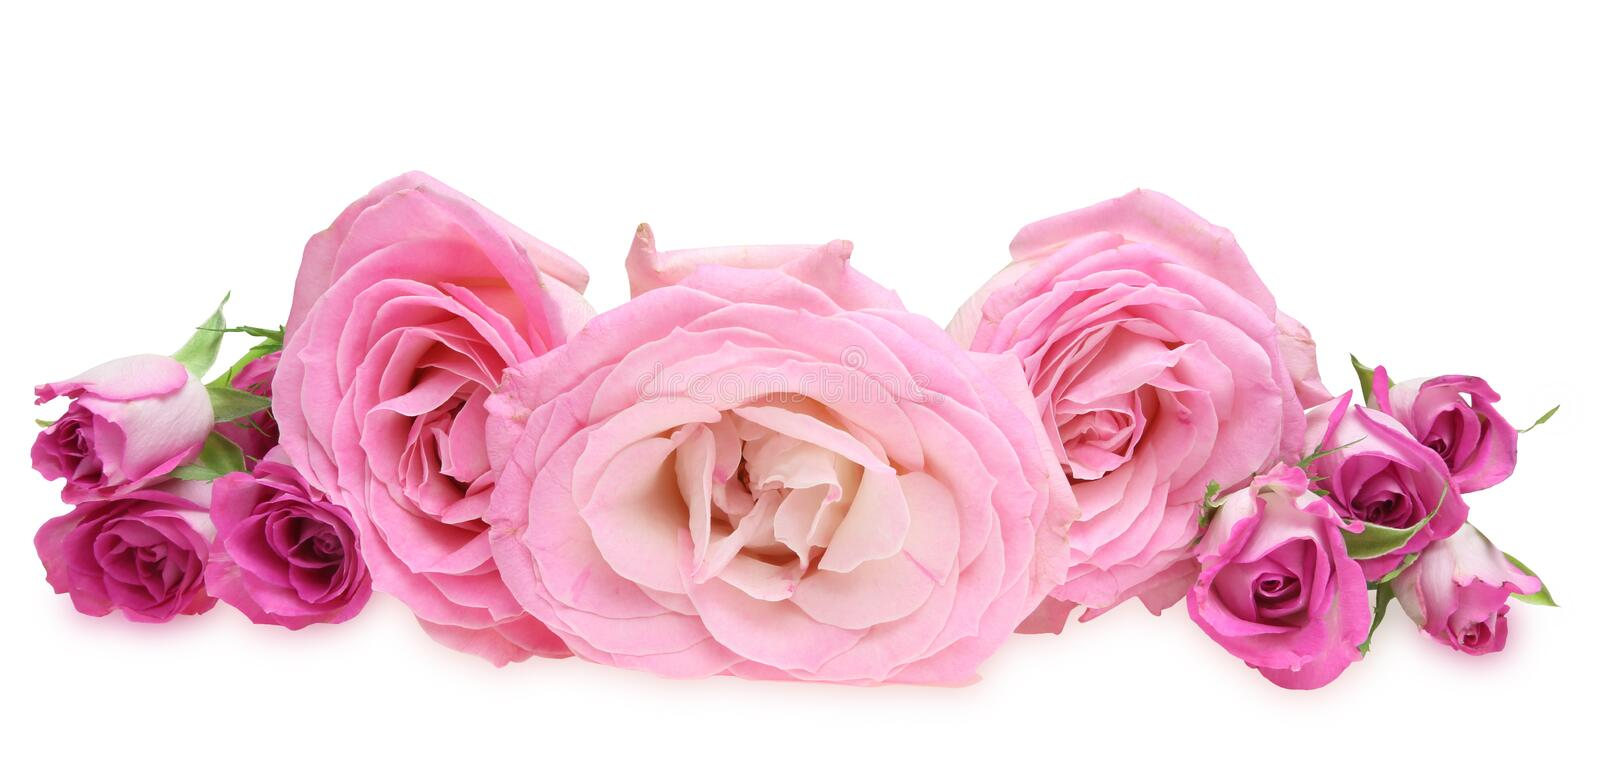 Flower head of roses stock images